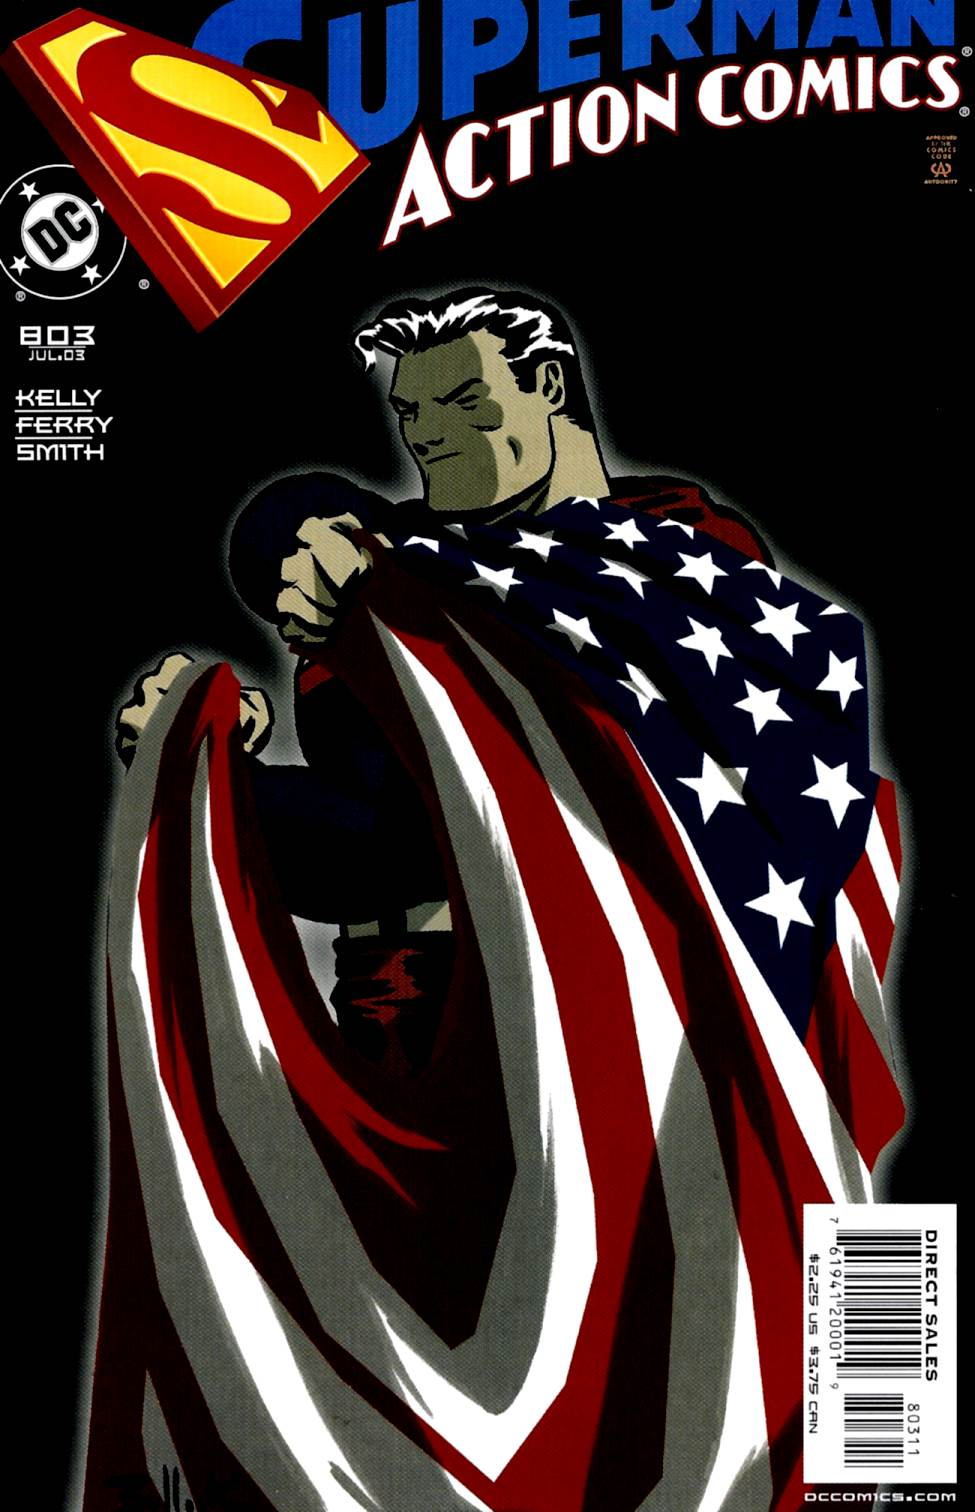 Read online Action Comics (1938) comic -  Issue #803 - 1